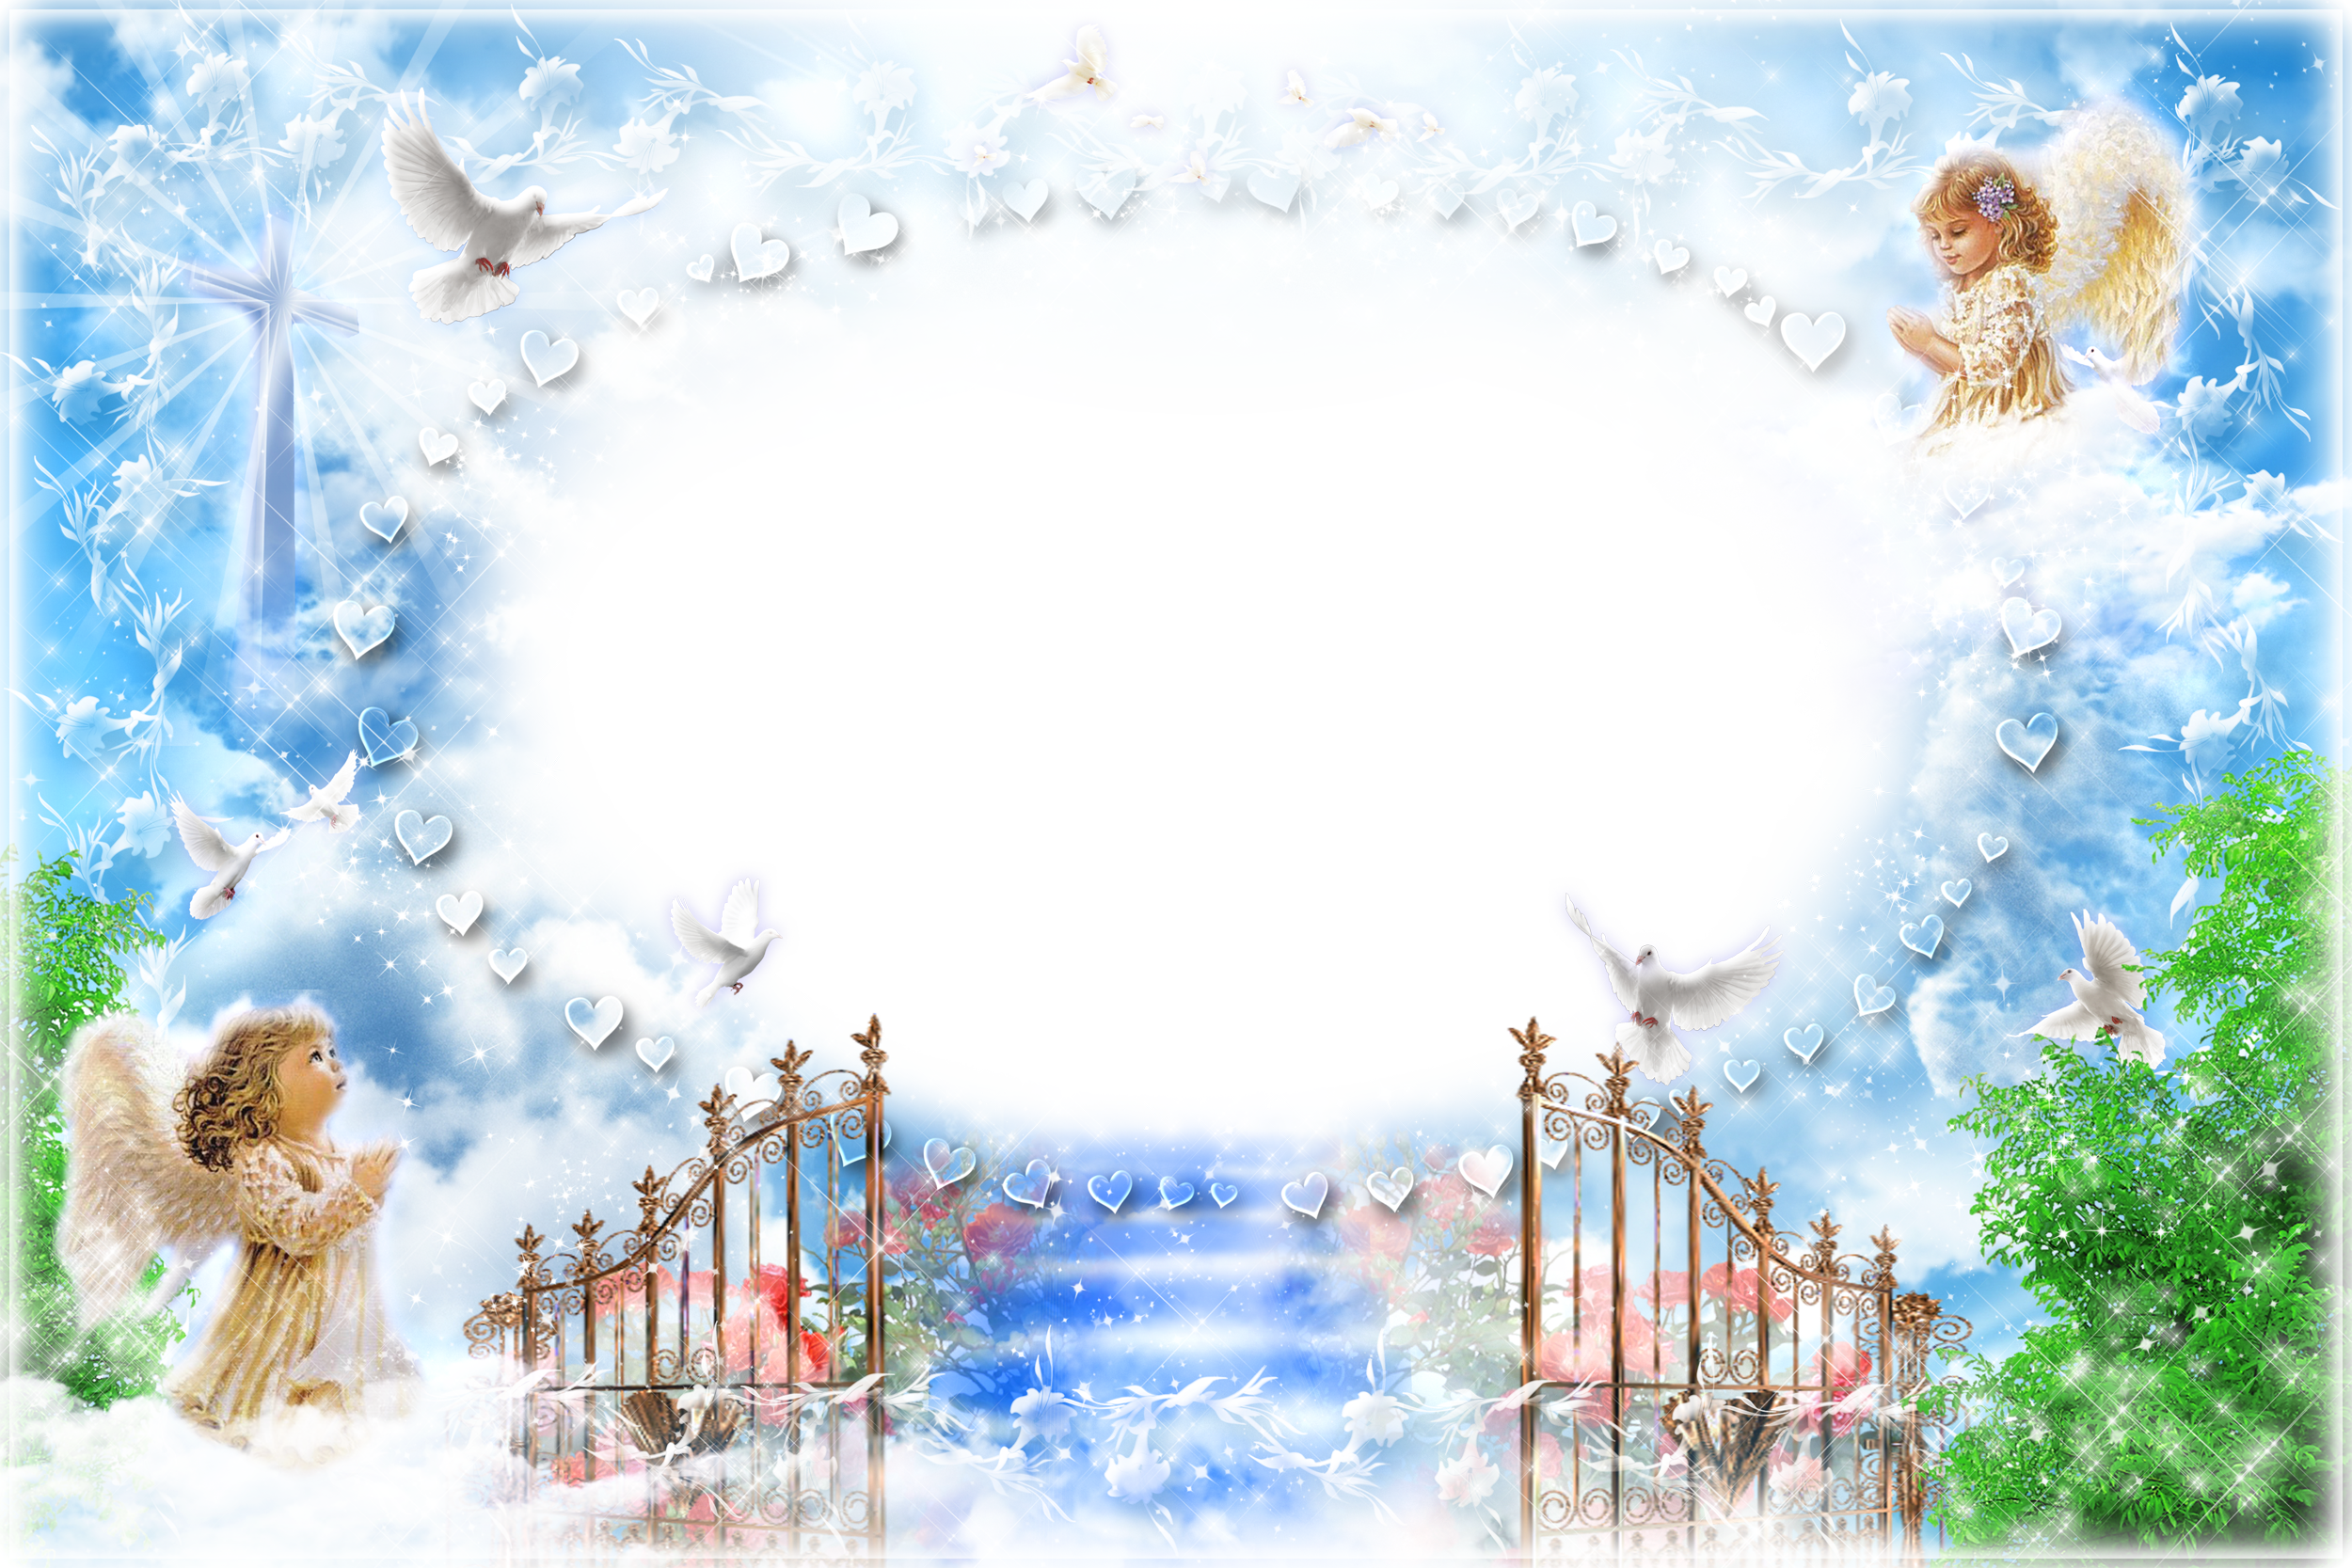 Heaven clipart stairway to heaven. Transparent png frame angels